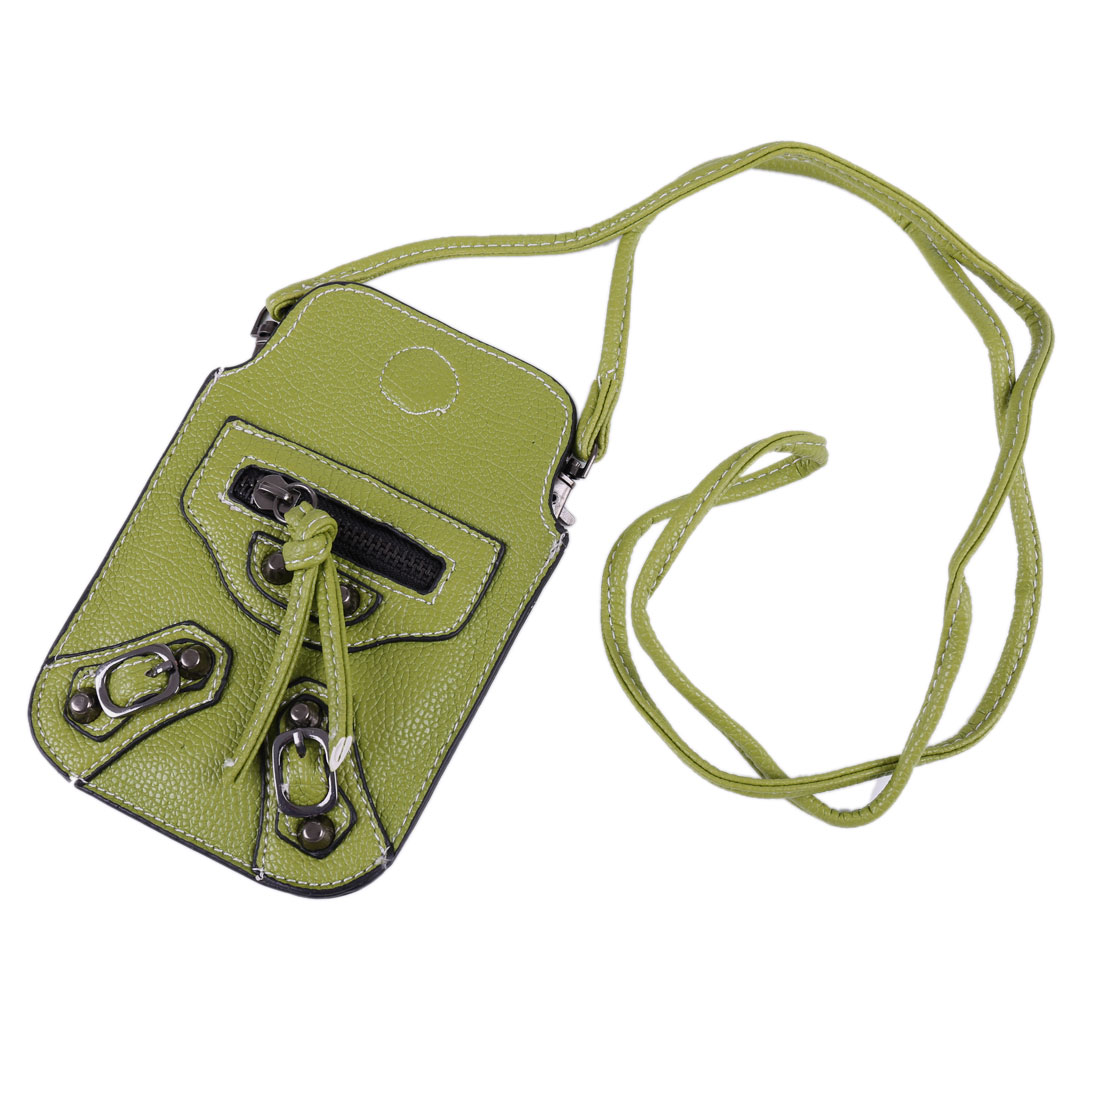 Zip Stud Decor Faux Leather Magnetic Closure Cell Phone Pouch Bag Green w Strap